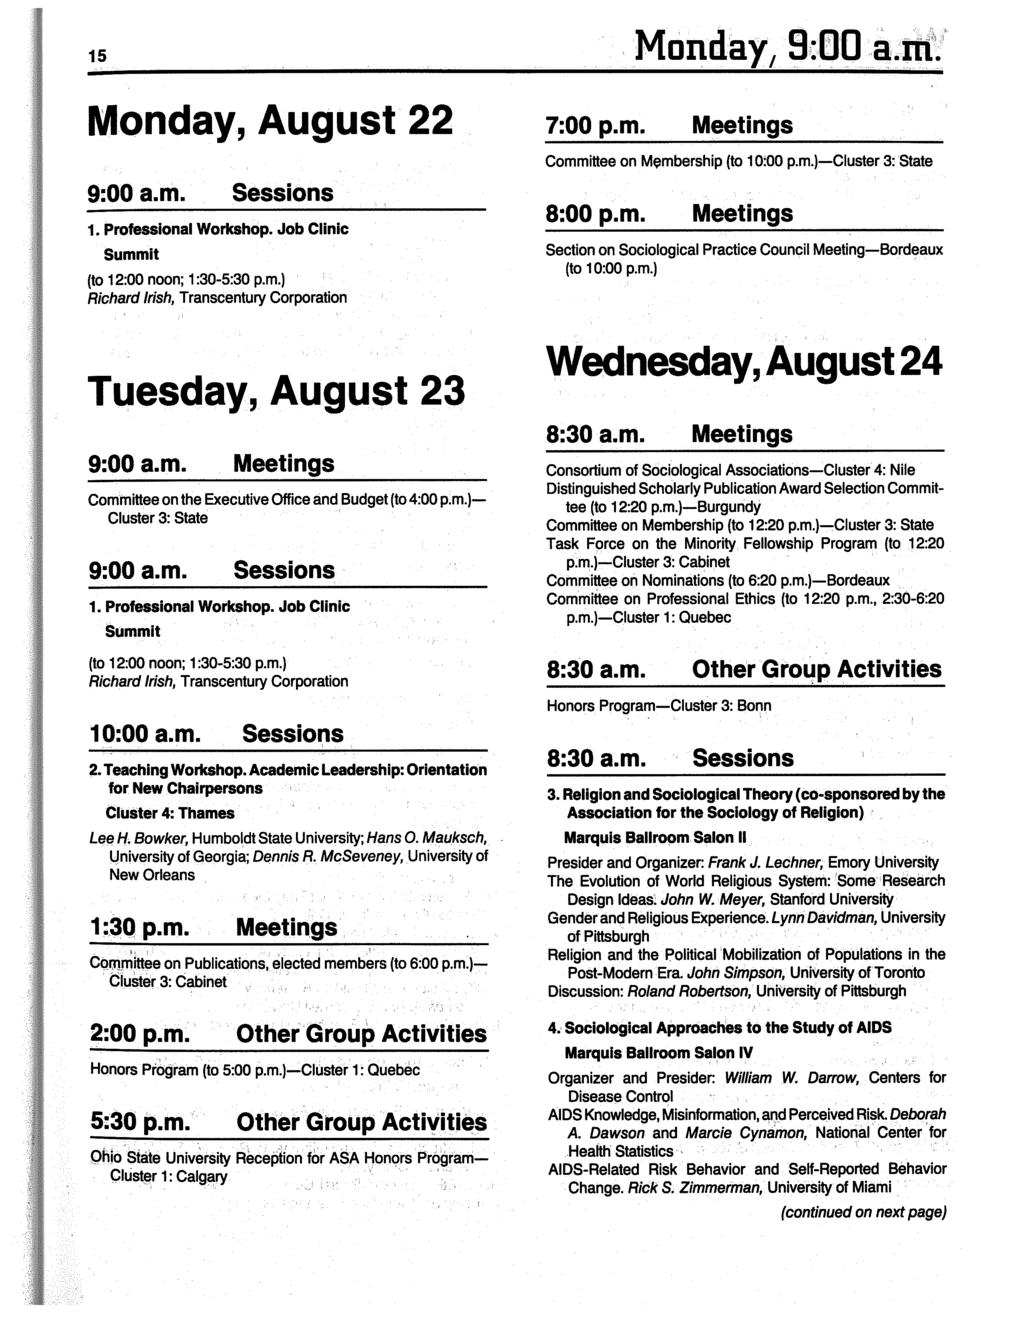 15 Monday, August 22 9:00a.m. Sessions 1. Professional Workshop. Job Clinic Summit (to 12:00 noon; 1 :30-5:30 p.m.) Richard Irish, Transcentury Corporation Tuesday,August23 9:00a.m. Meetings Committee on the Executive Office and Budget (to 4:00p.